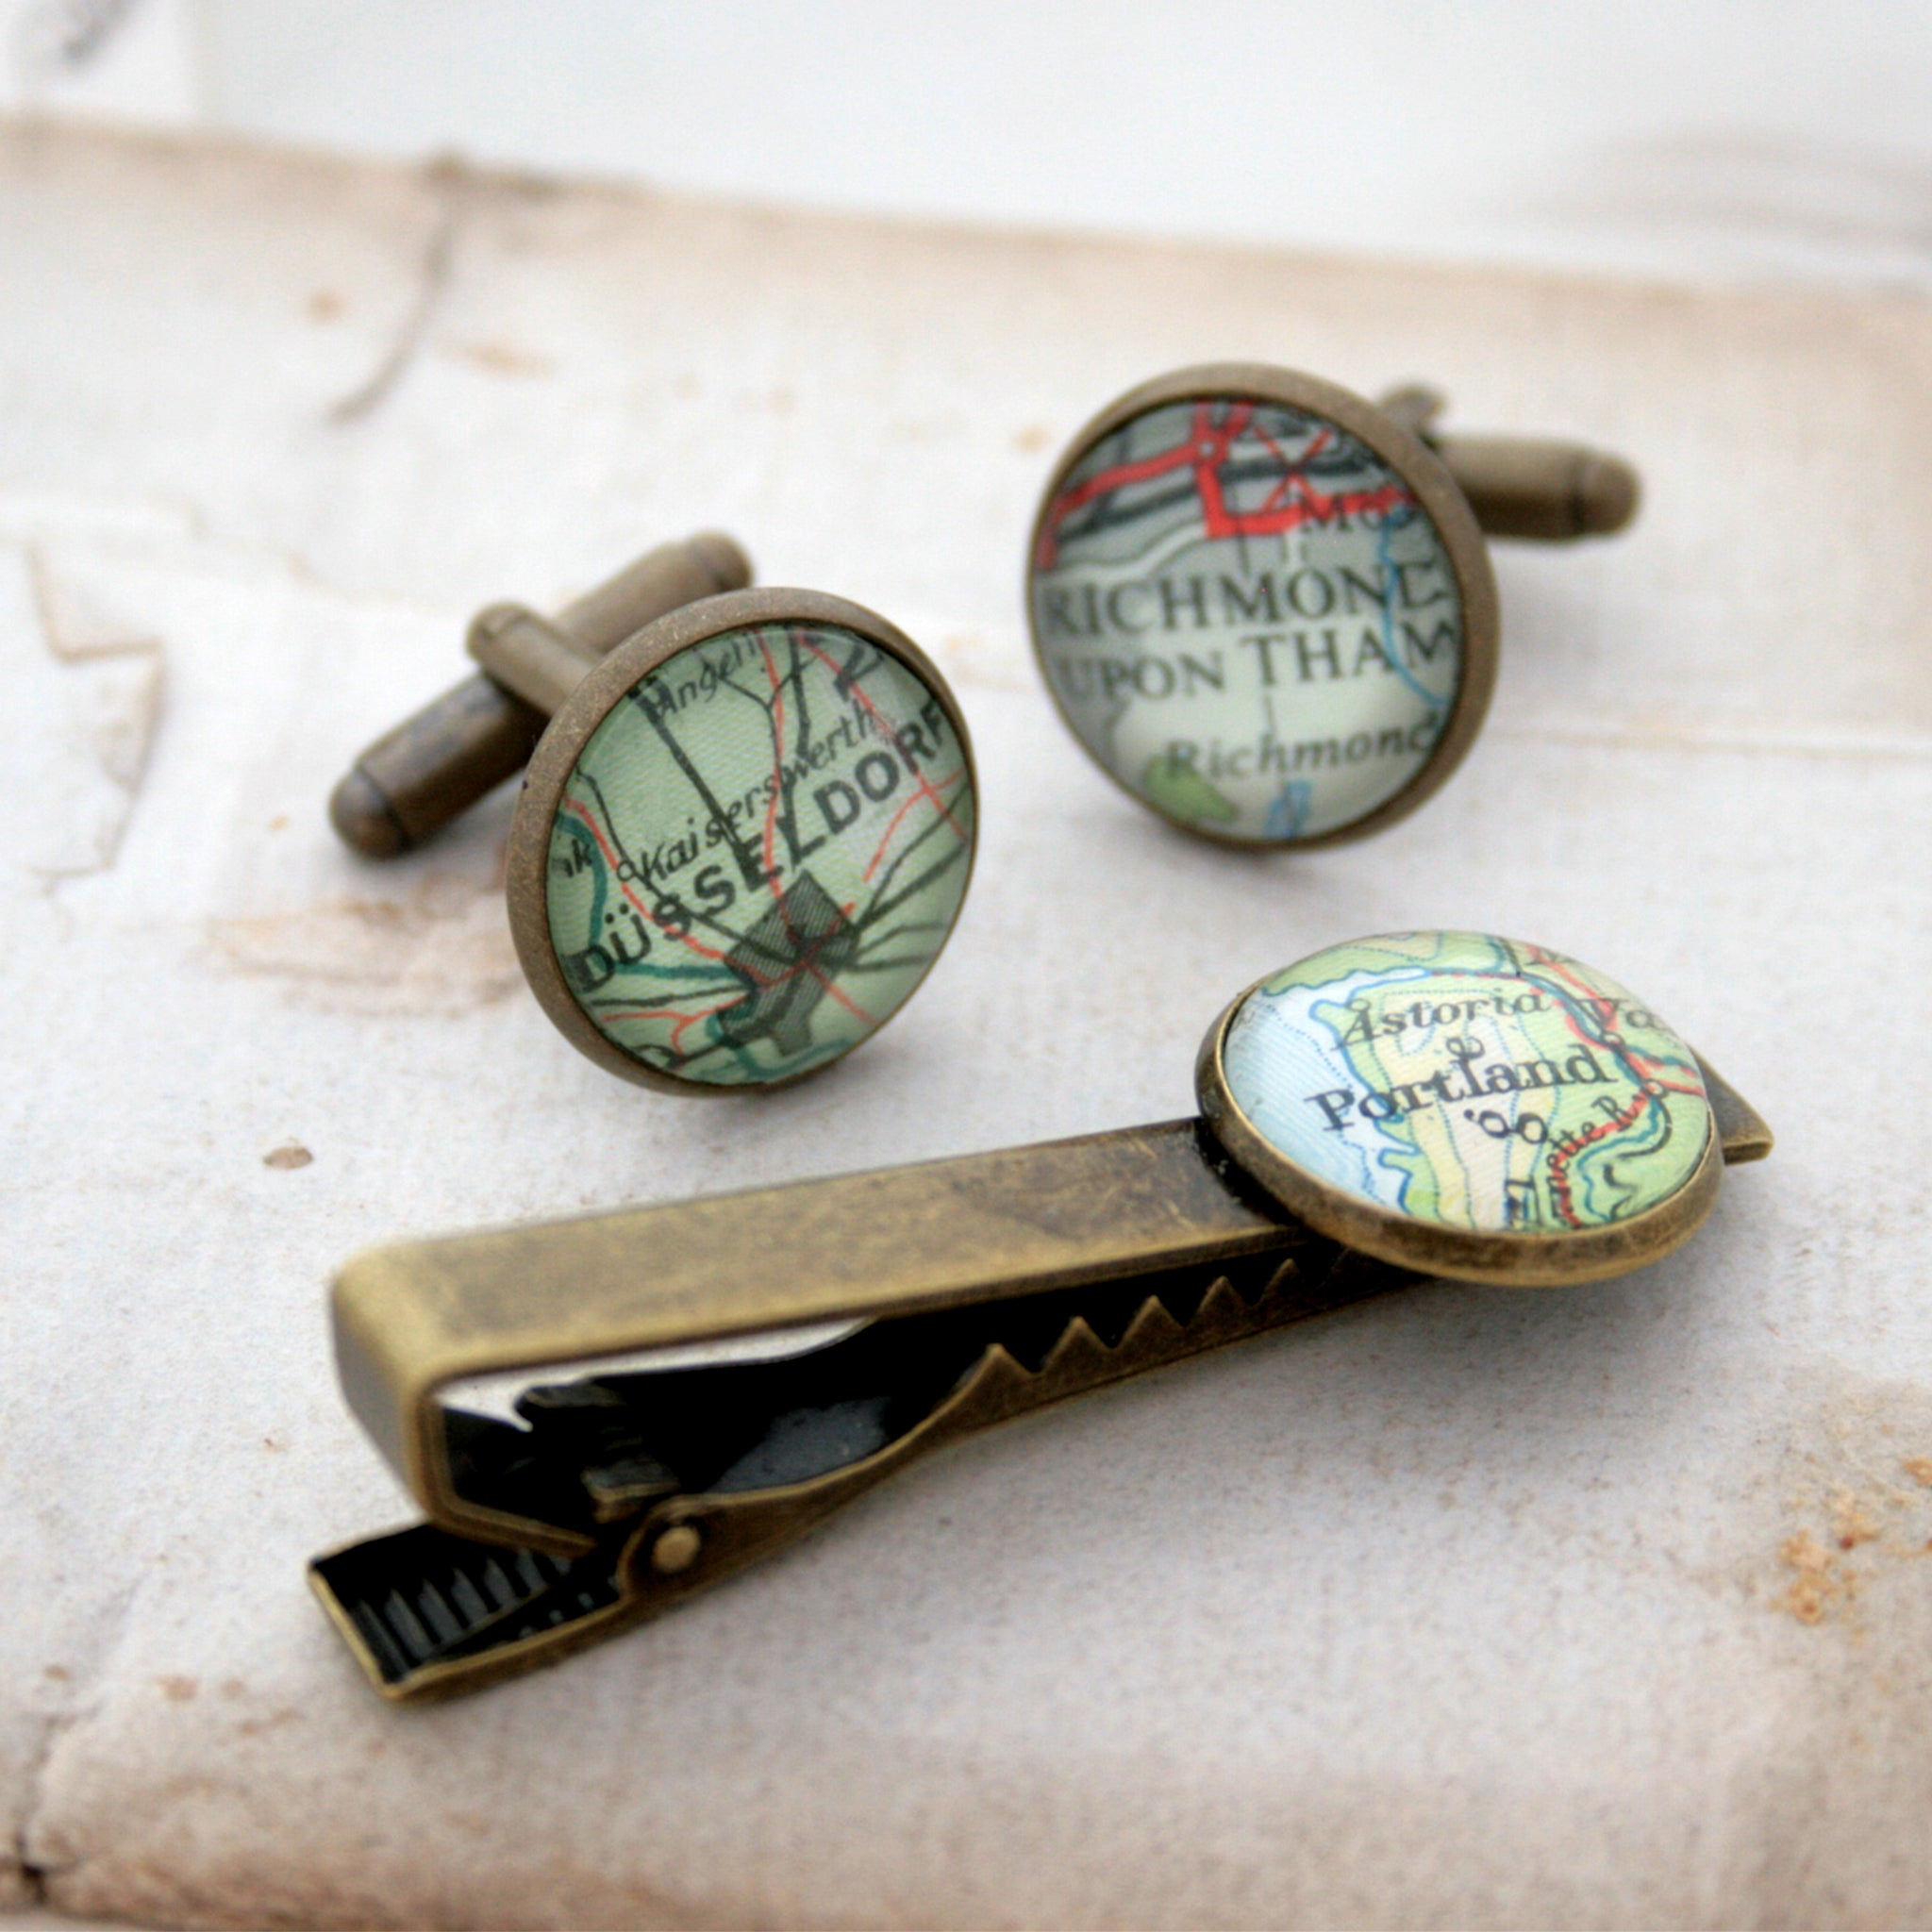 Personalised set of Tie Clip and cufflinks in bronze color featuring selection of maps